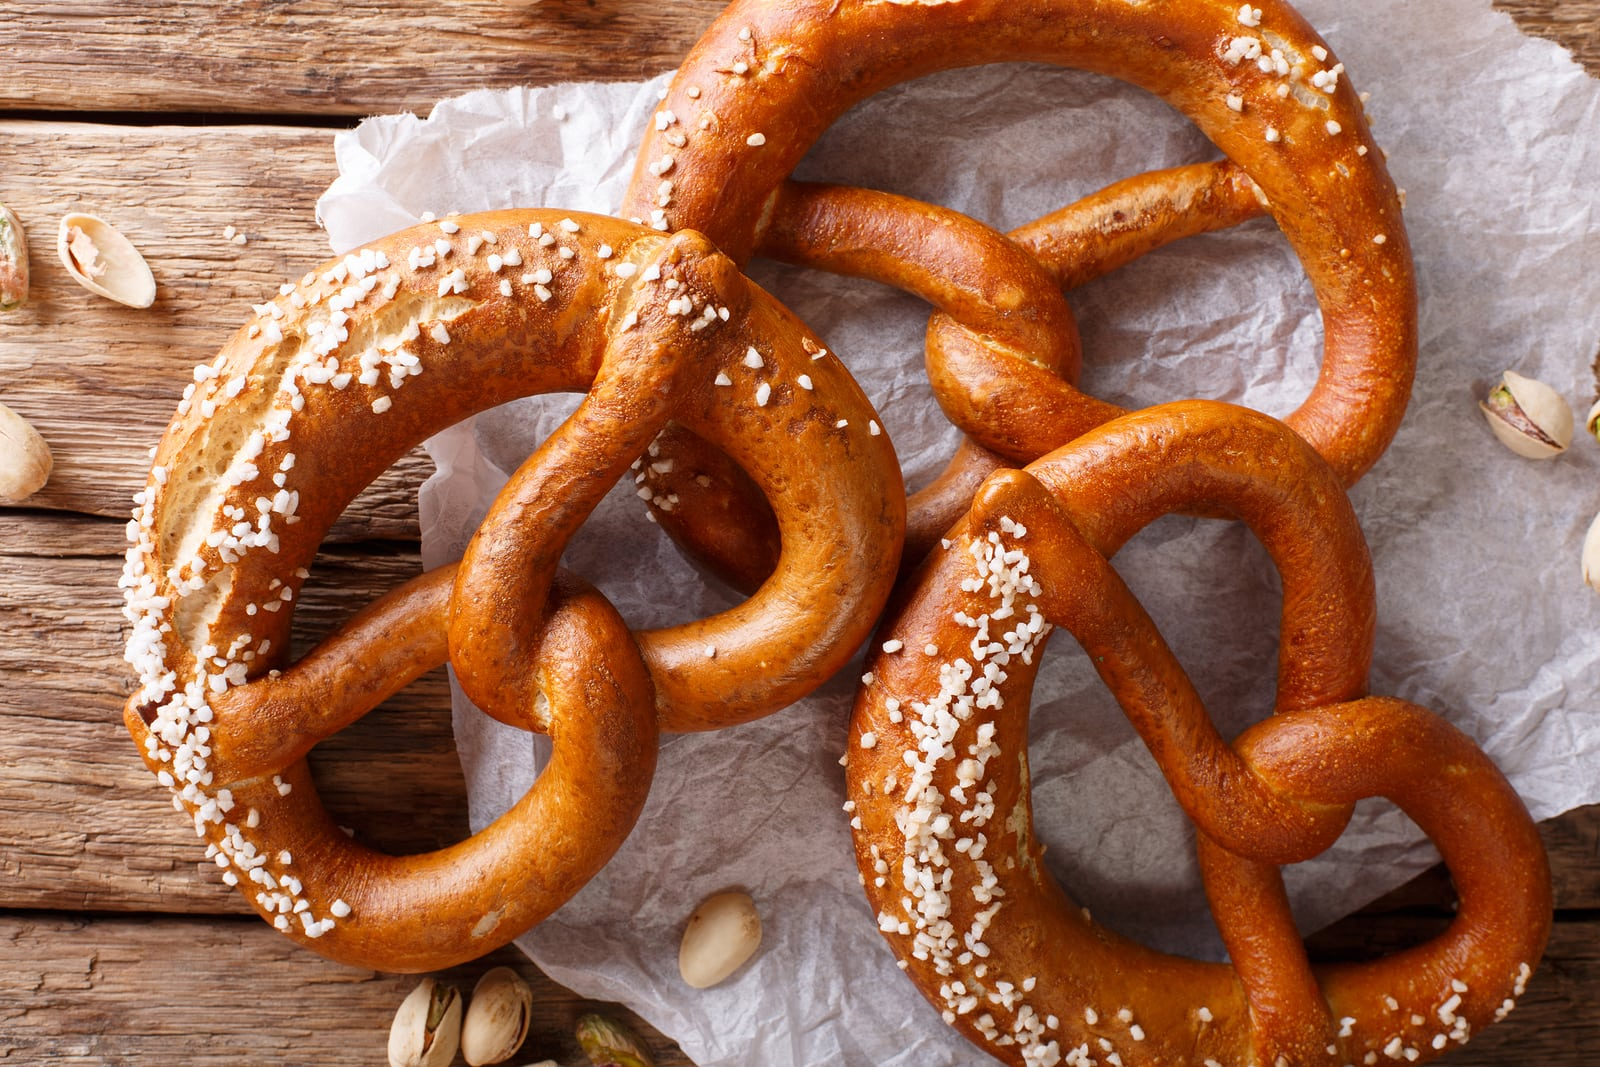 Freshly baked soft pretzel with generous sprinkling of coarse salt close-up on the table. horizontal view from above